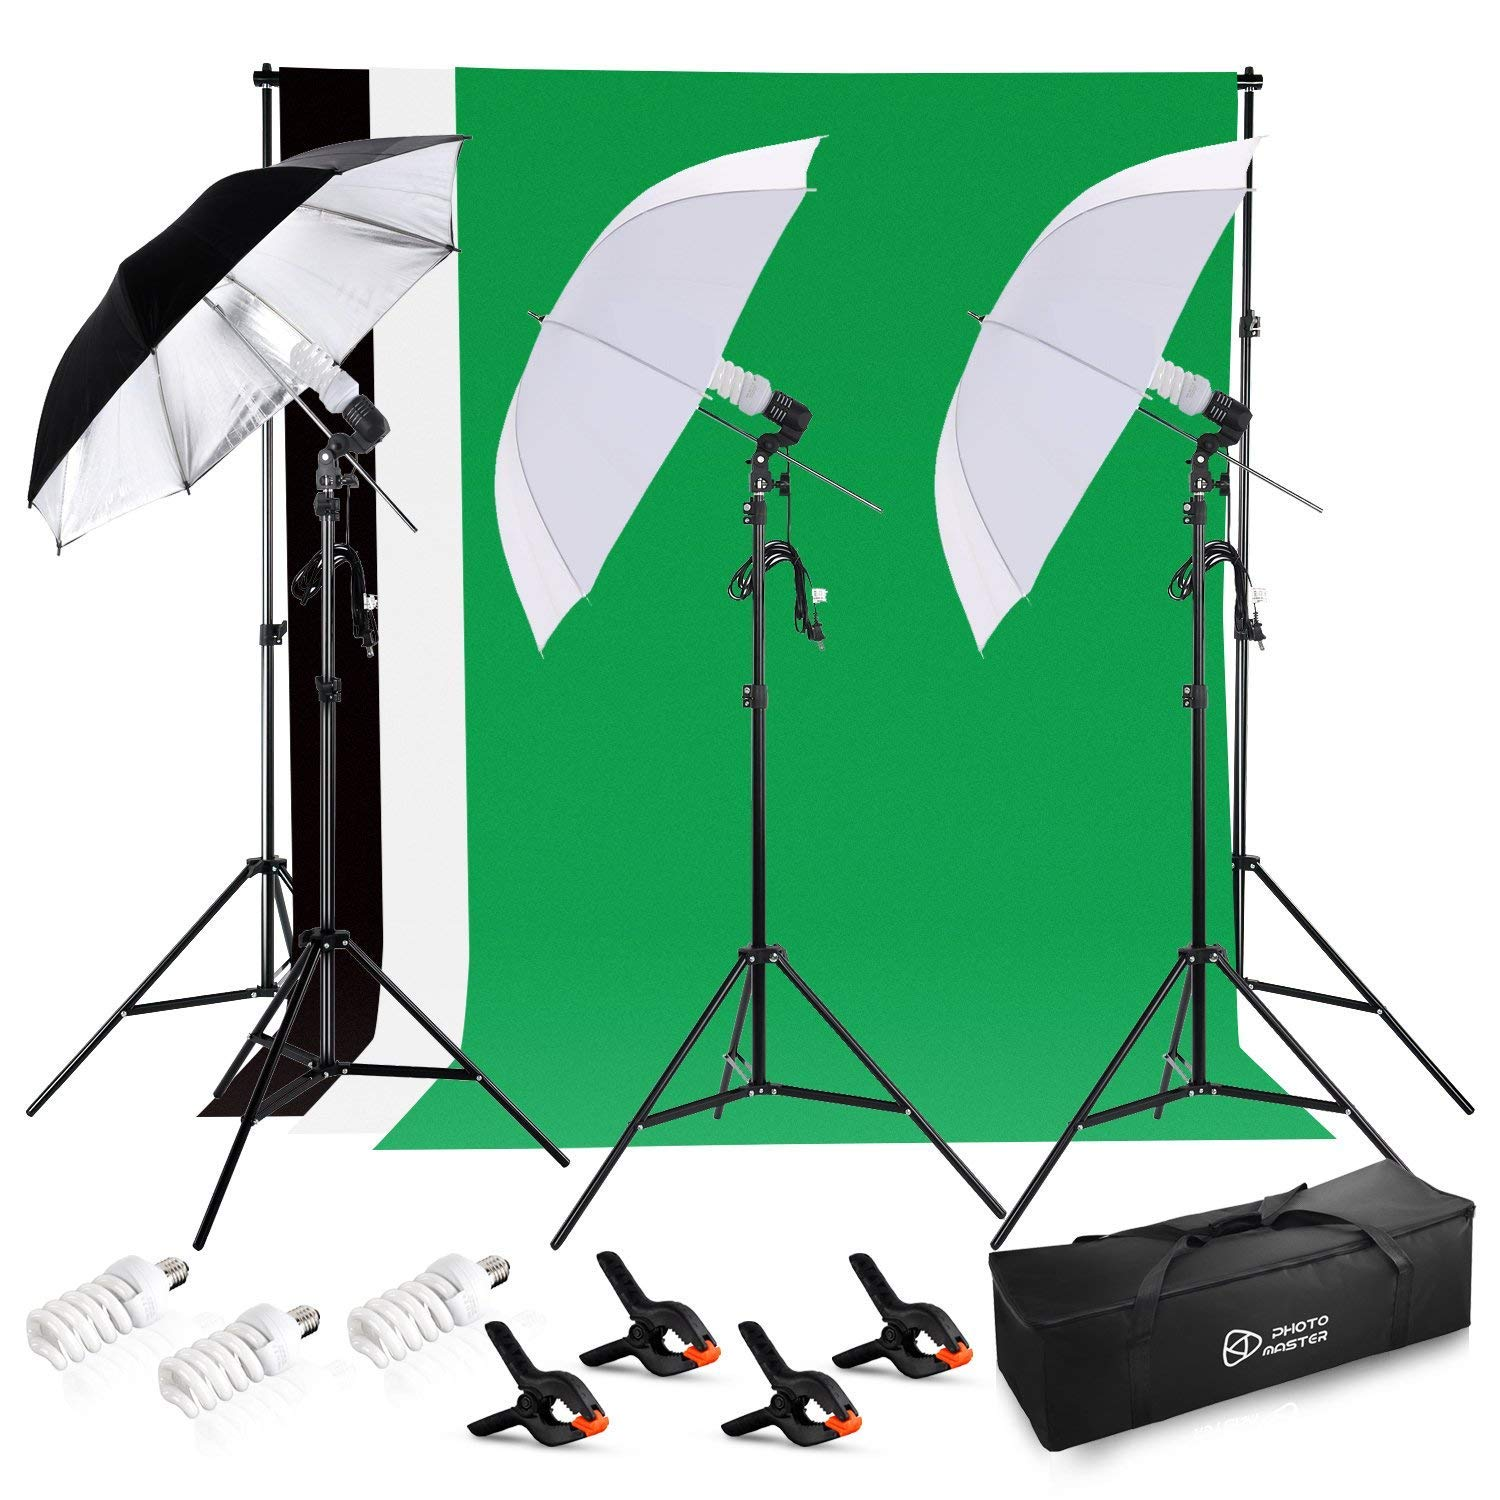 PHOTO MASTER 600W Photography Continuous Umbrellas Lighting Kit for Video Studio Includes 6x6.6ft Background Stand, 3 Backdrops, 2 Soft Umbrellas,1 Umbrella Reflector, 4 Clamps, Carrying Bags by PHOTO MASTER (Image #1)